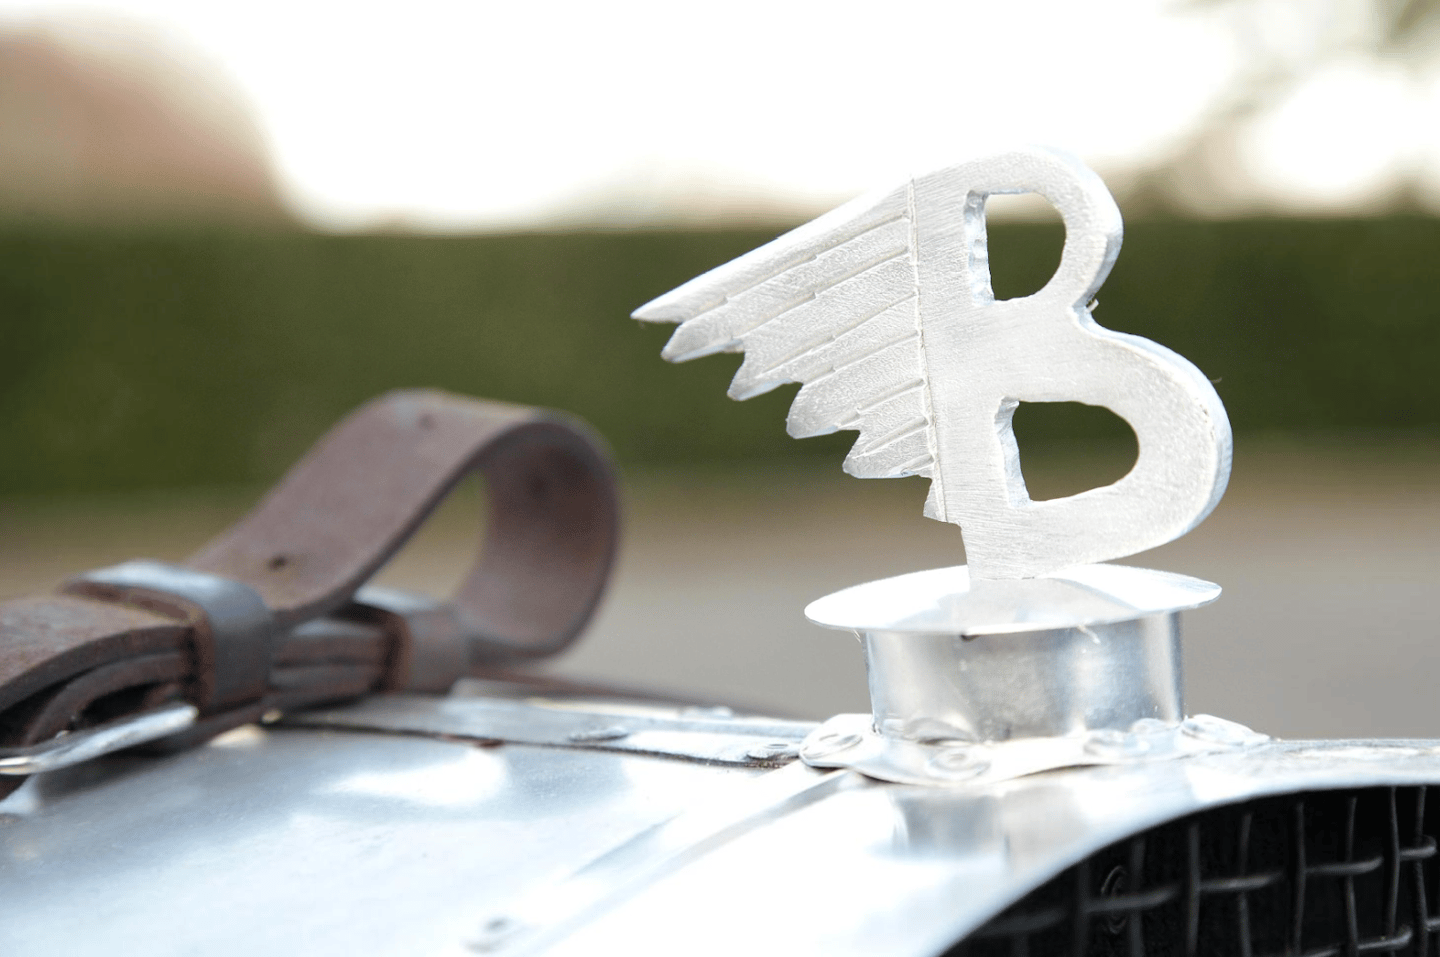 This hand-made 1920s Bentley 4½-Liter Replica Children's Car is to be auctioned at Bonhams' Les Grandes Marques du Monde au Grand Palais auction sale on February 8, 2018 and is estimated to sell for between €5,000 and €7,000